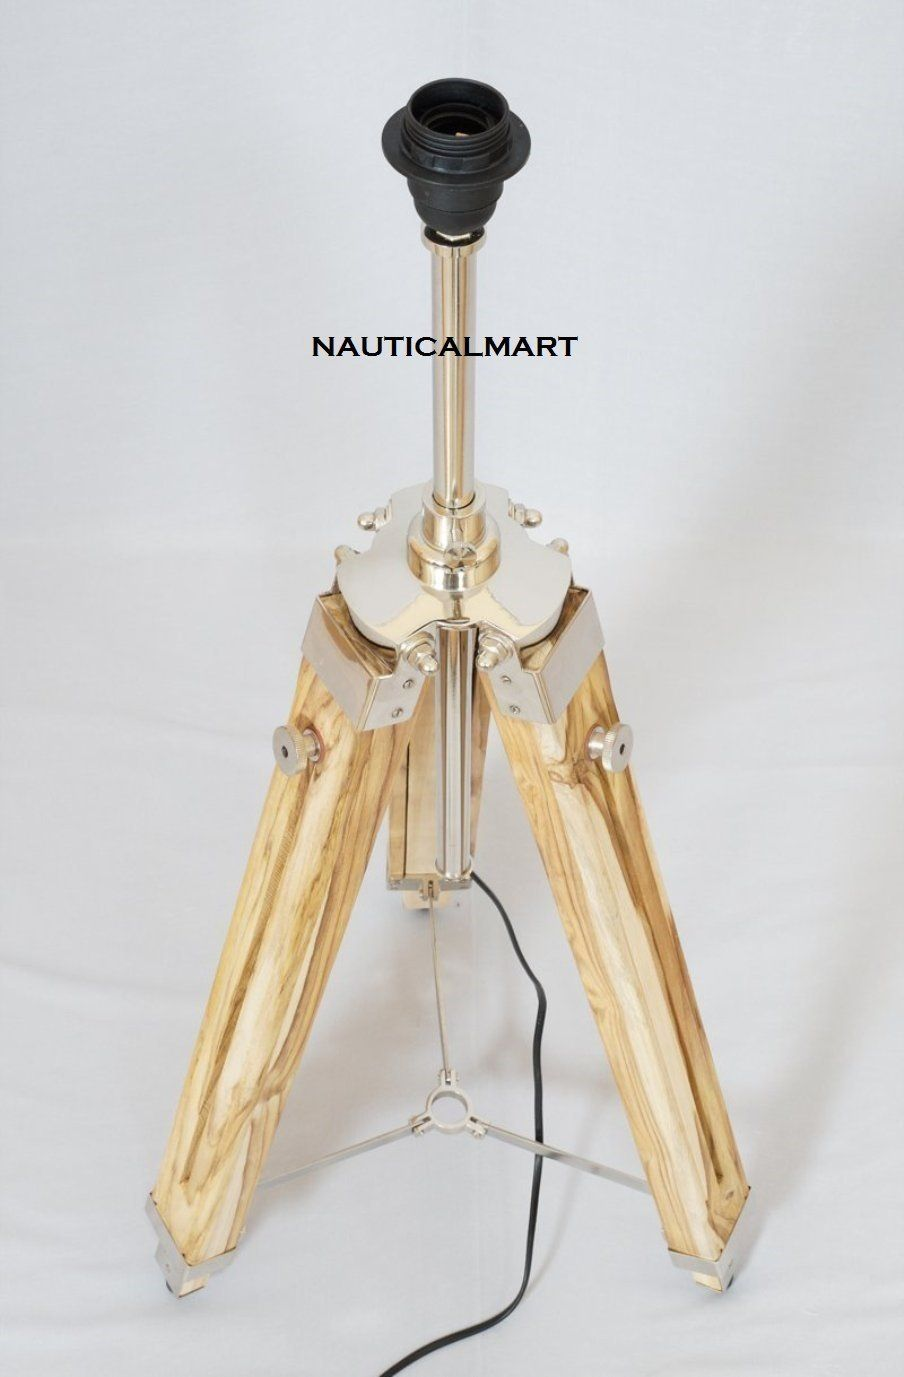 Natural tripod floor lamp stand nauticalmart amazon lighting natural tripod floor lamp stand nauticalmart amazon lighting aloadofball Gallery